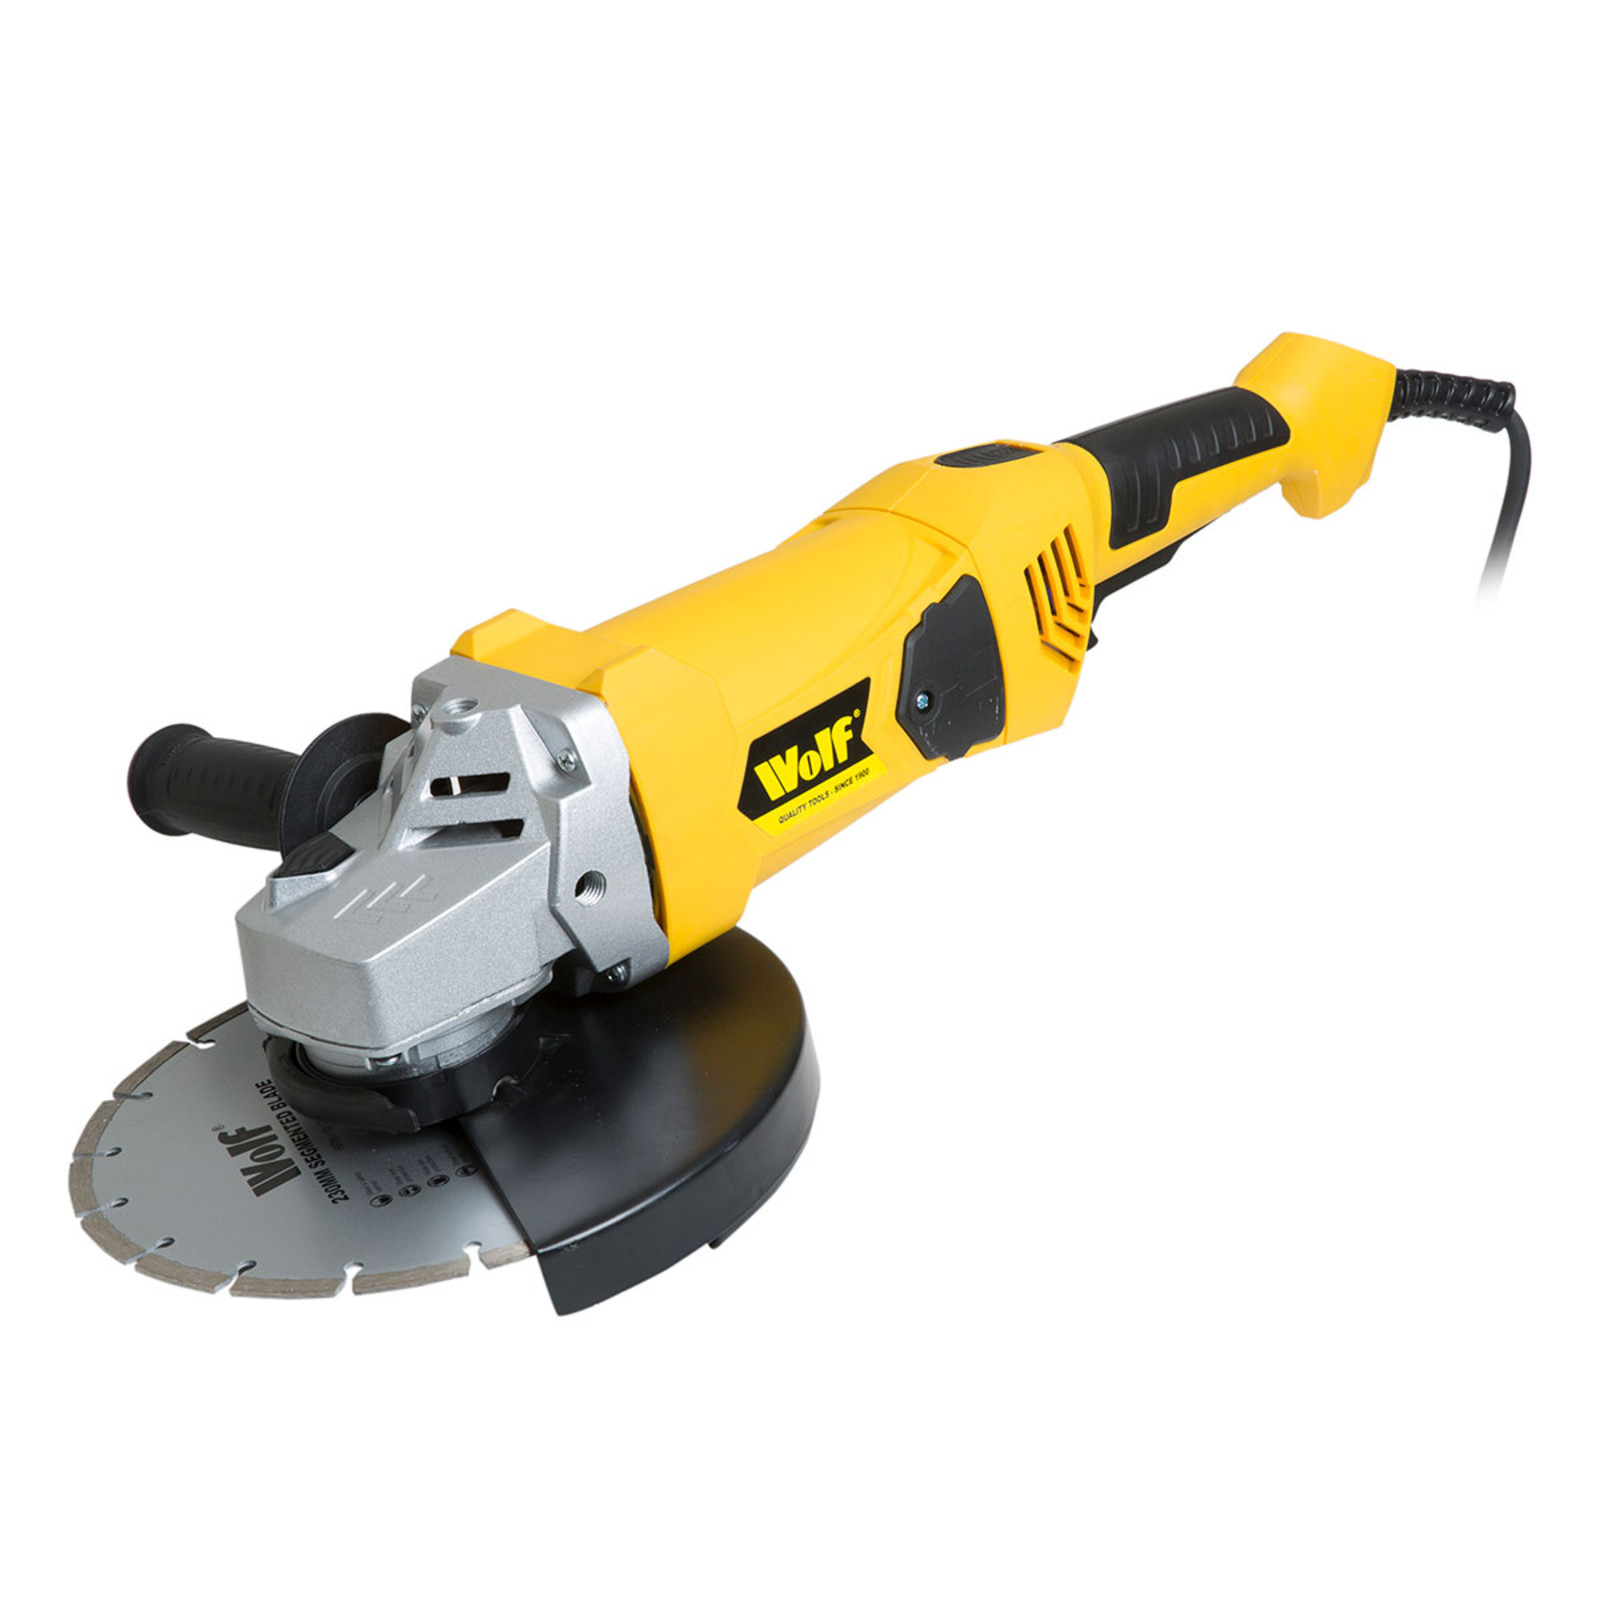 Wolf 2300w 9 Angle Grinder Click On The Image To Enlarge